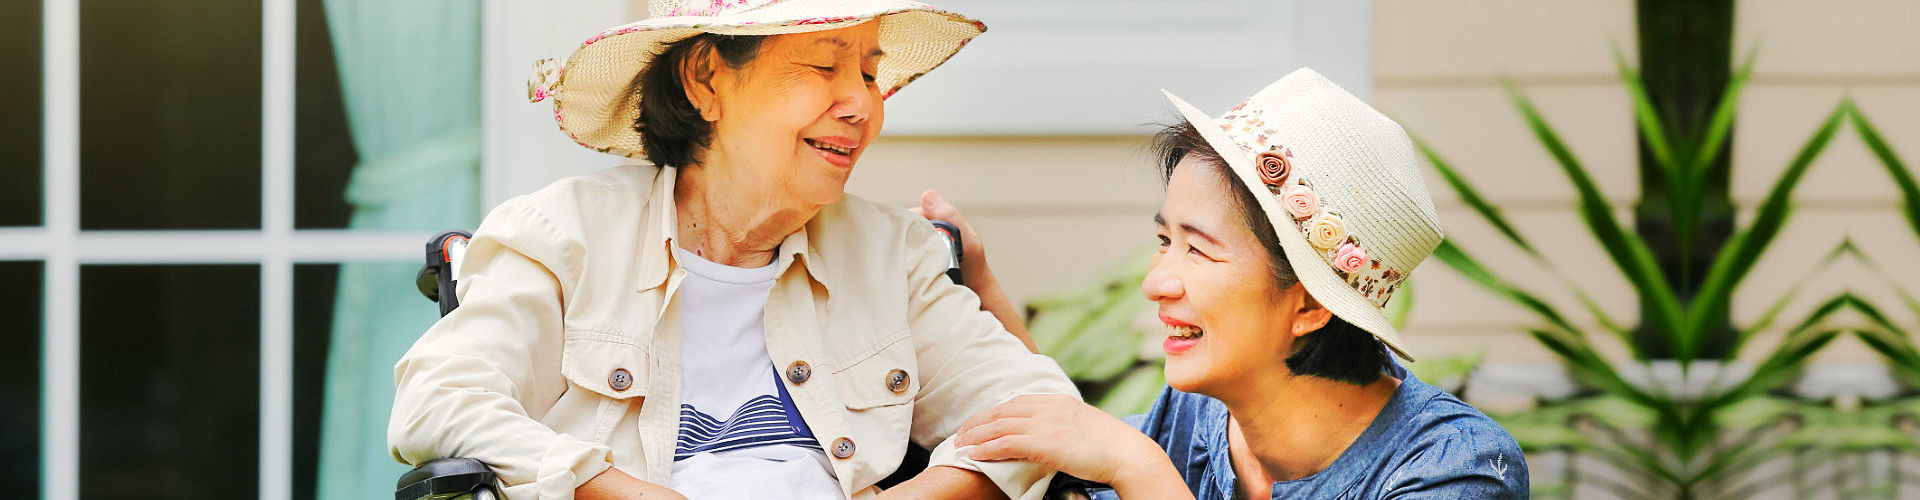 a caregiver and a senior woman smiling